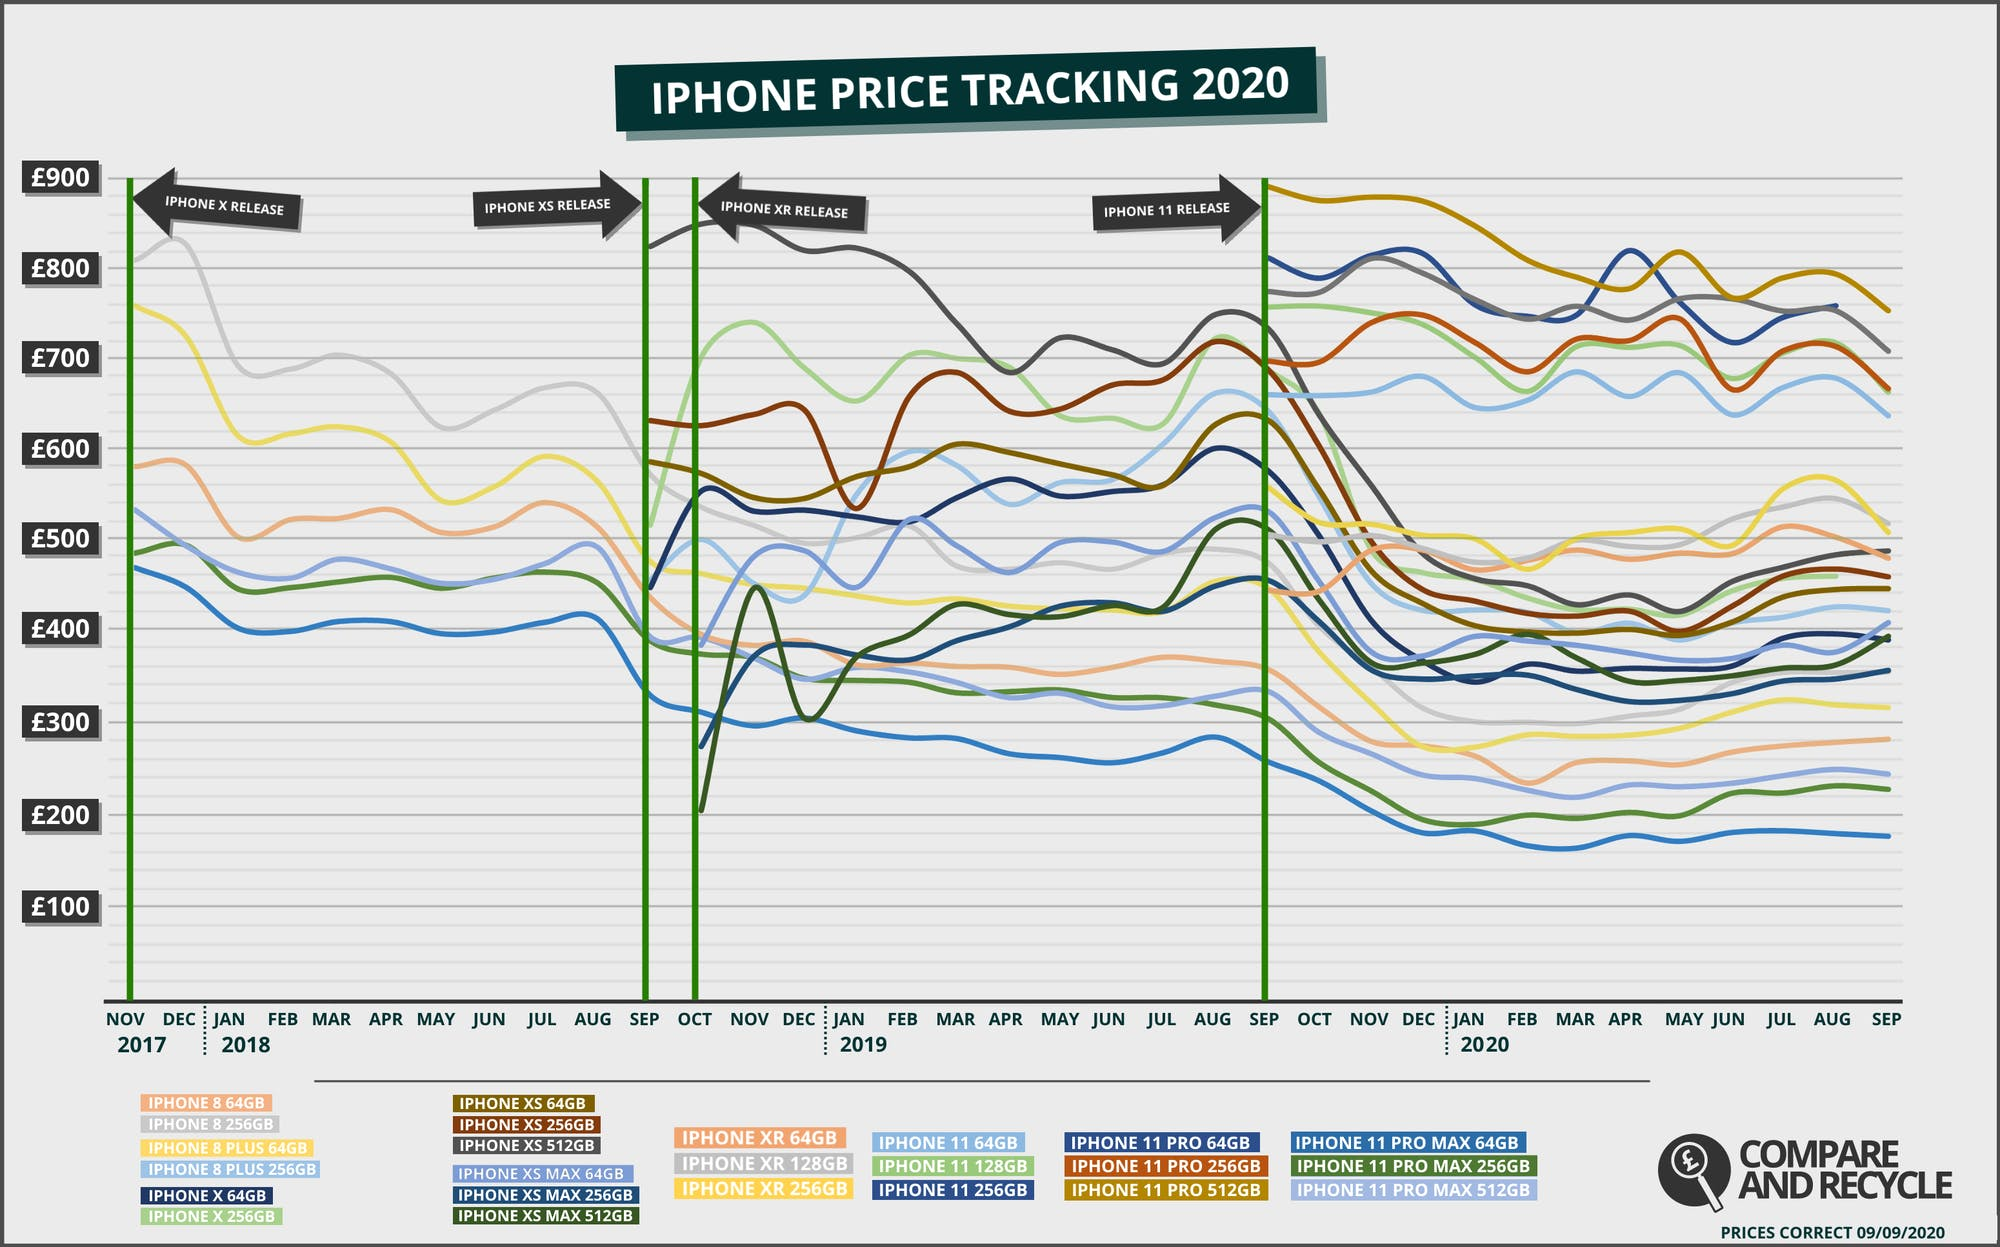 Price History of iPhone 8 to iPhone 11